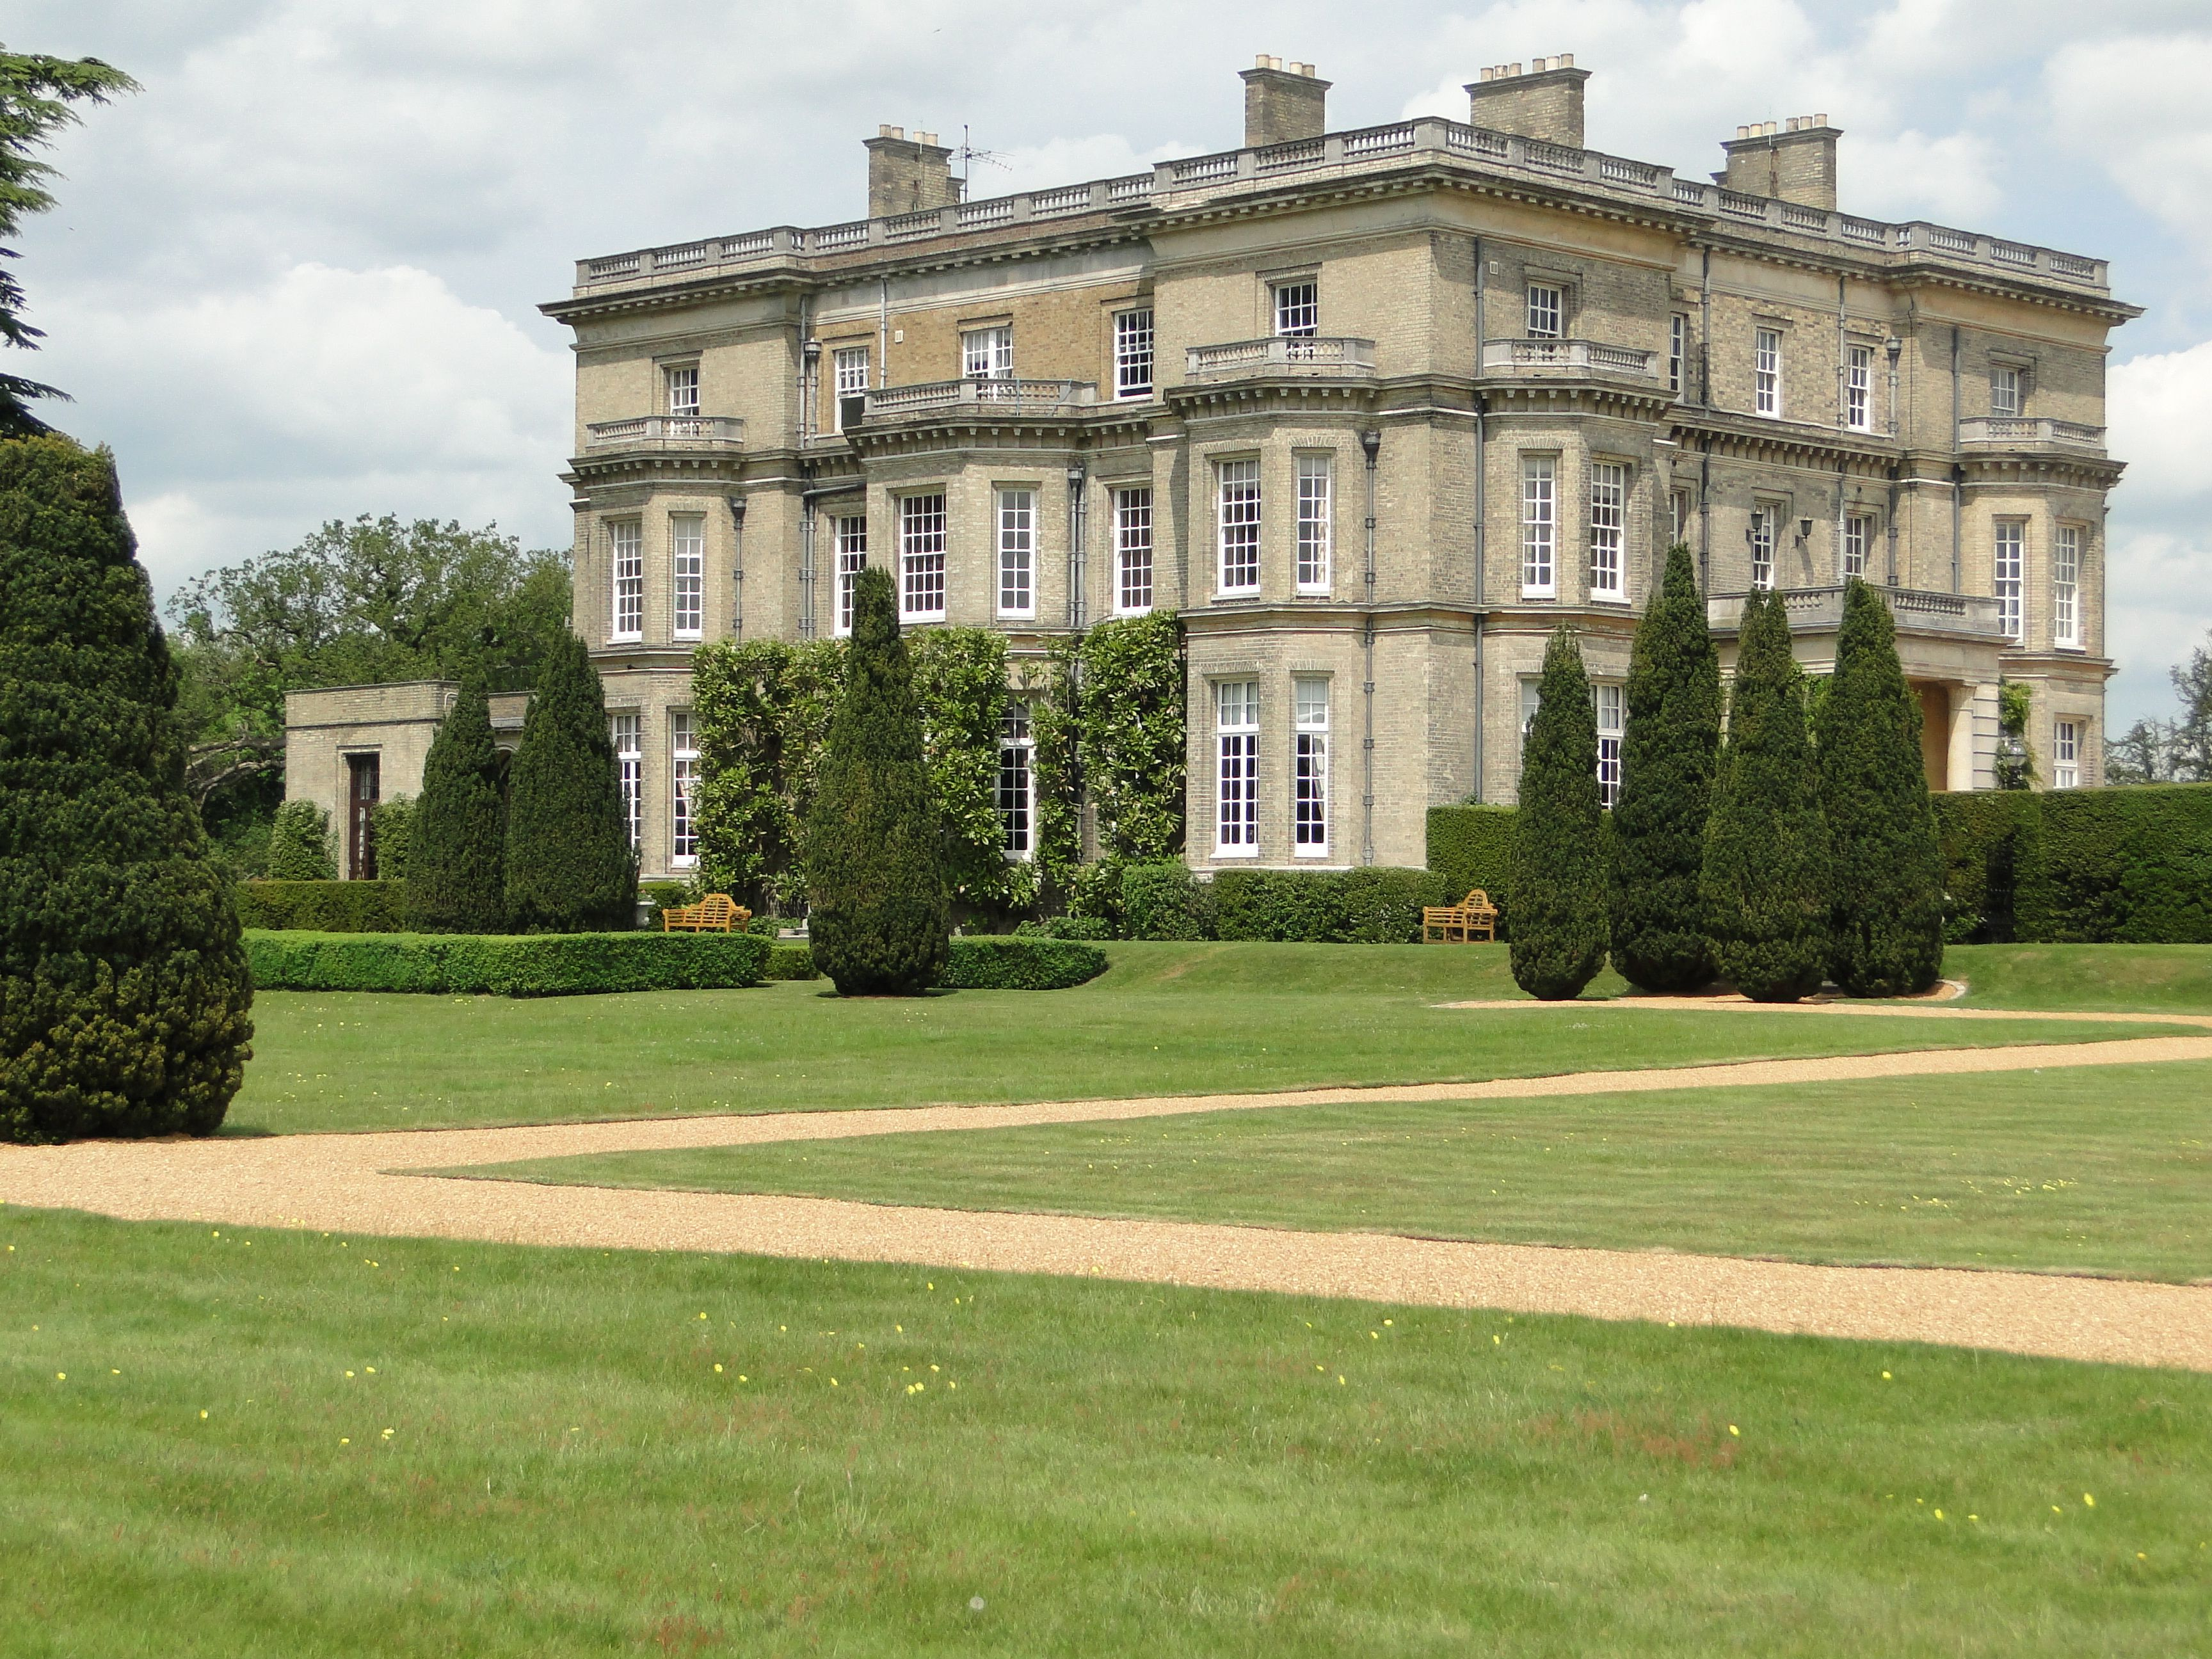 Hedsor House and Grounds